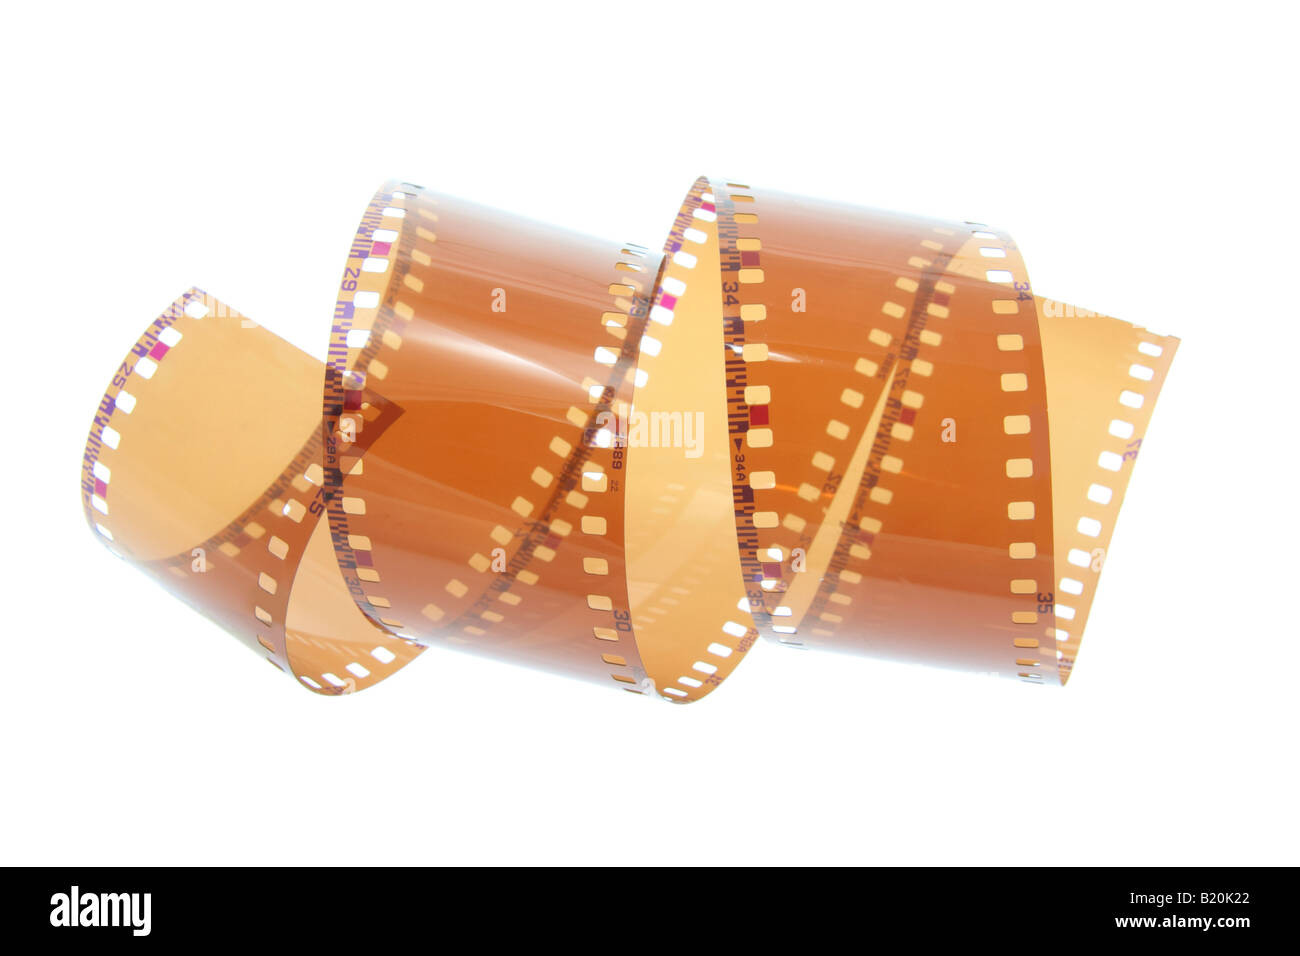 Blank Negative Film - Stock Image